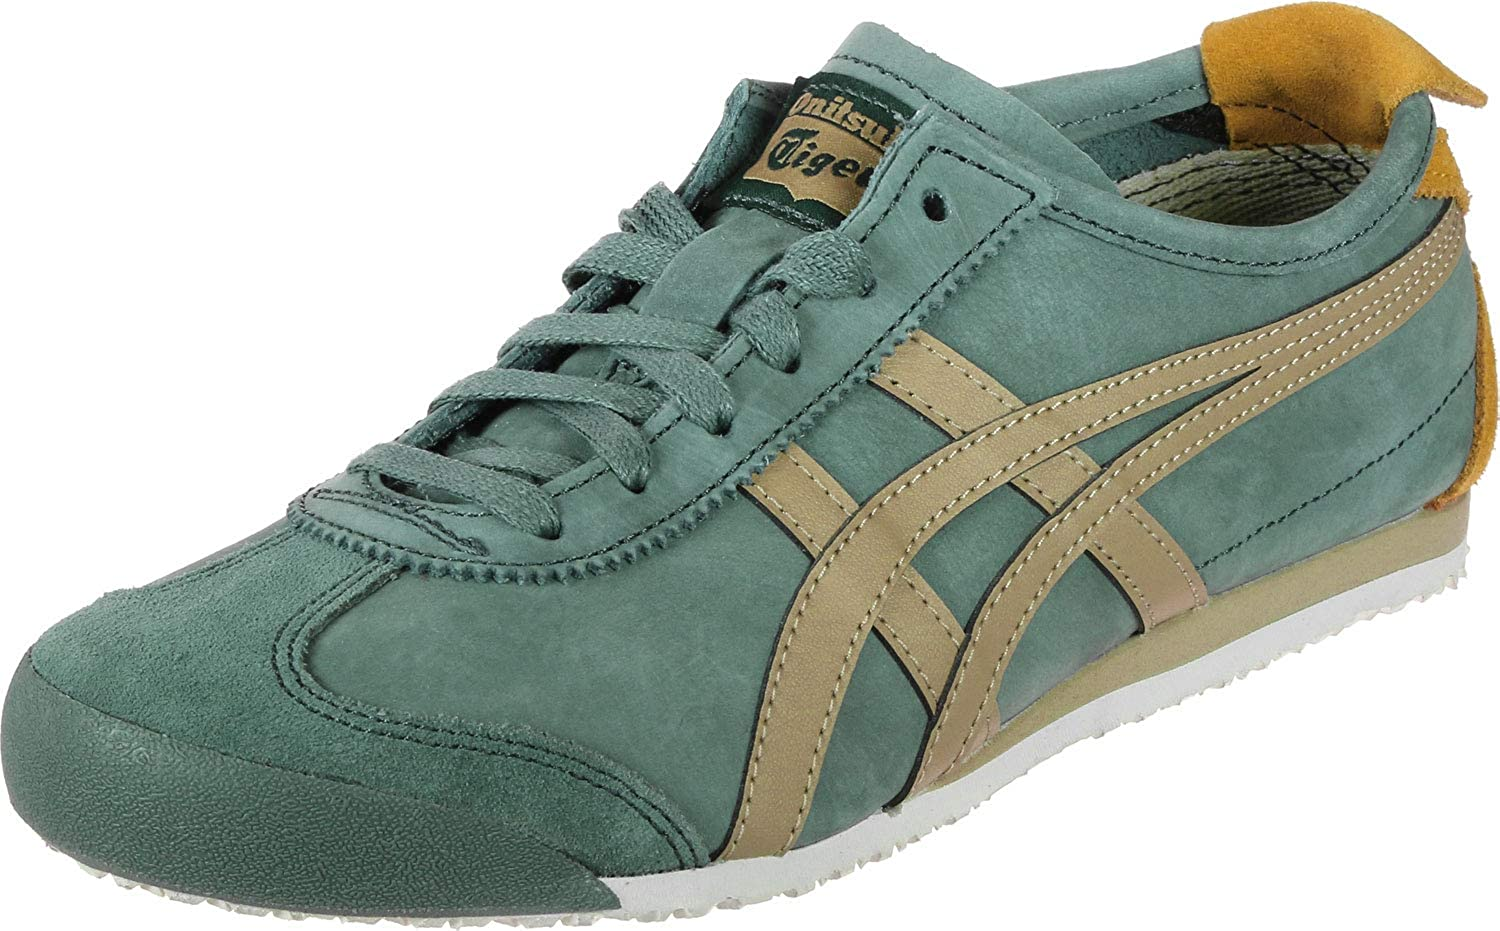 onitsuka tiger mexico 66 new york wikipedia kiwix ultra